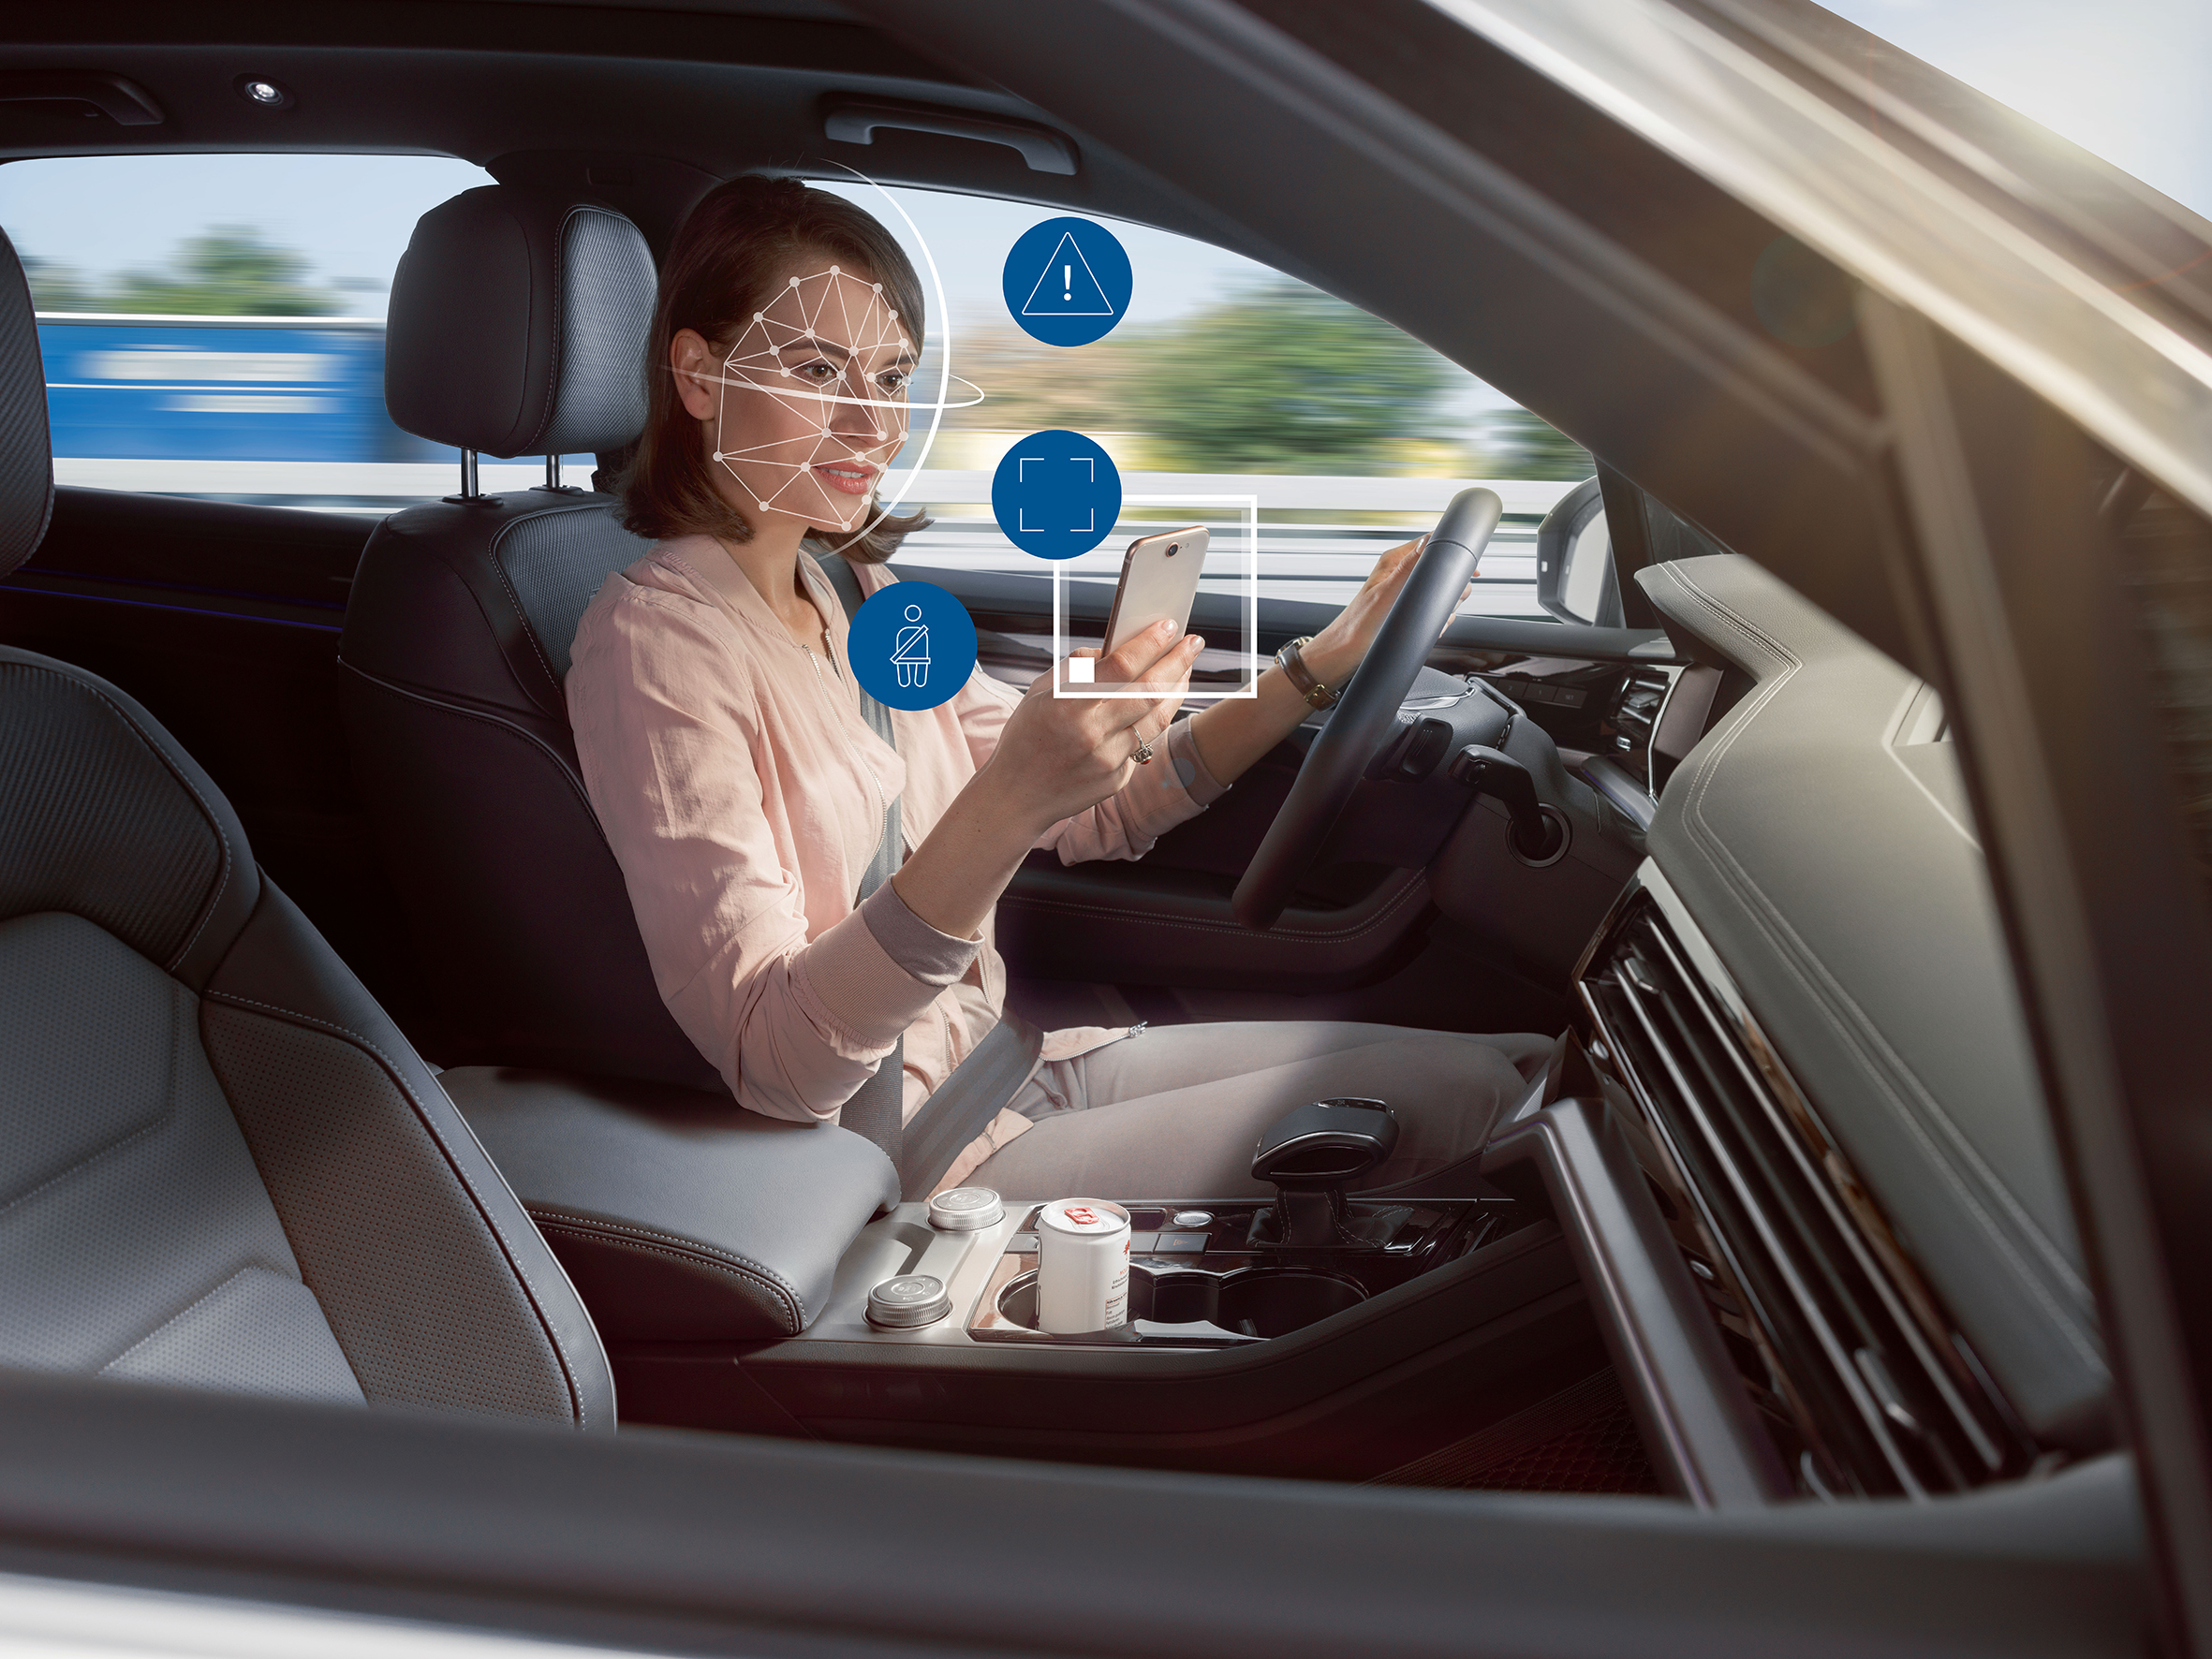 Bosch helps cars keep an eye on their passengers